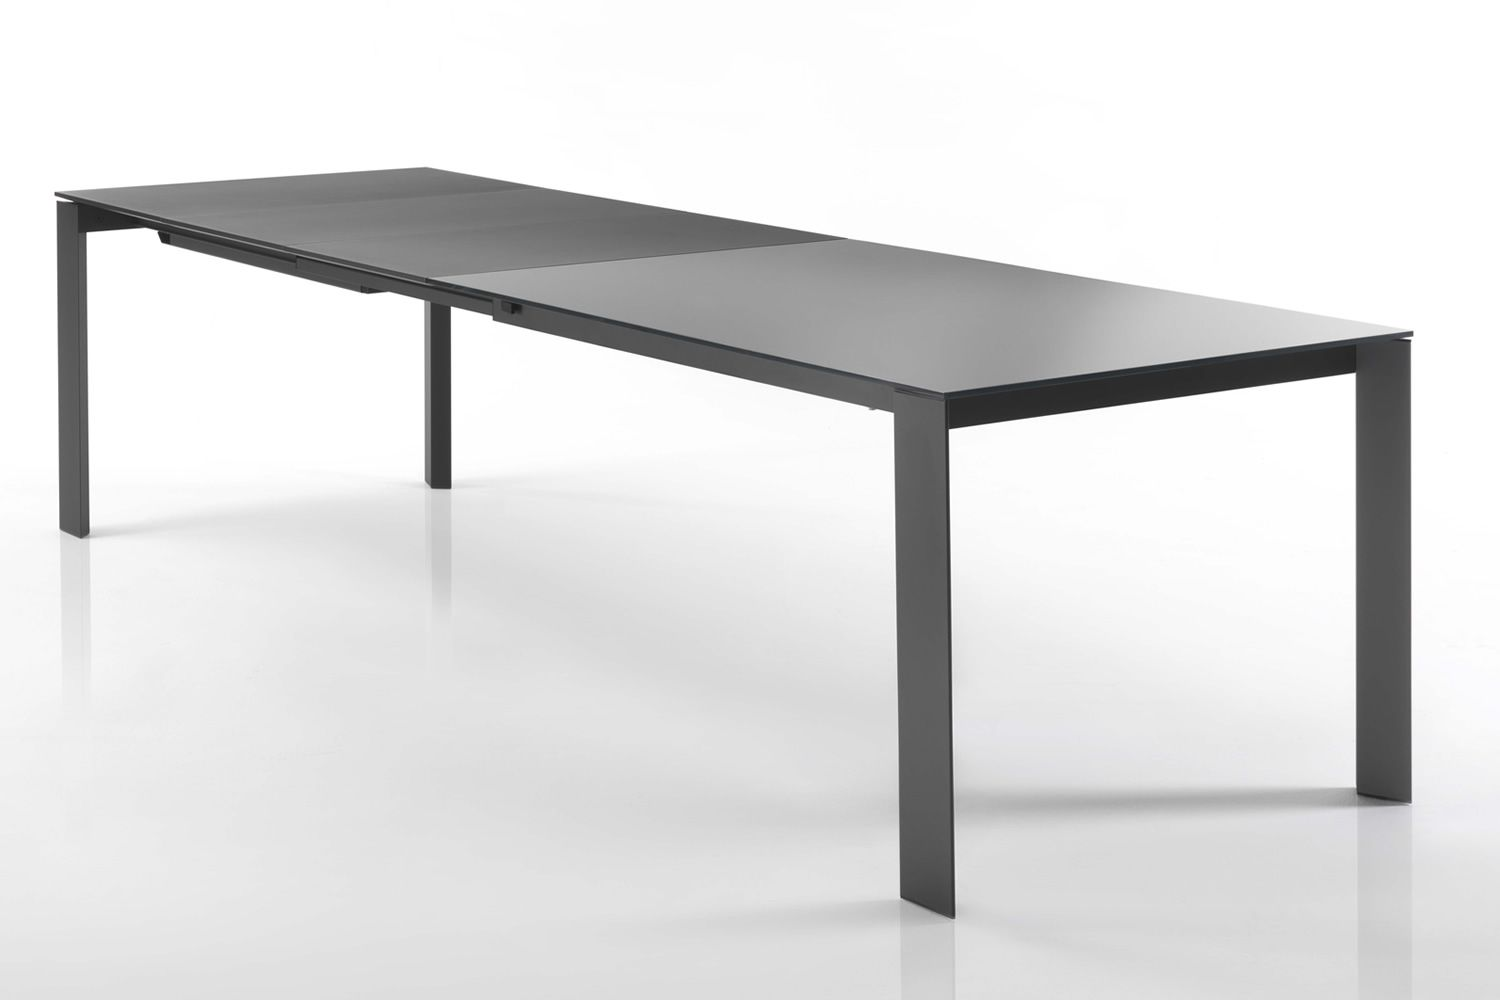 Pascal table design de bontempi casa 160 x 90 cm - Bureau 90 cm de large ...